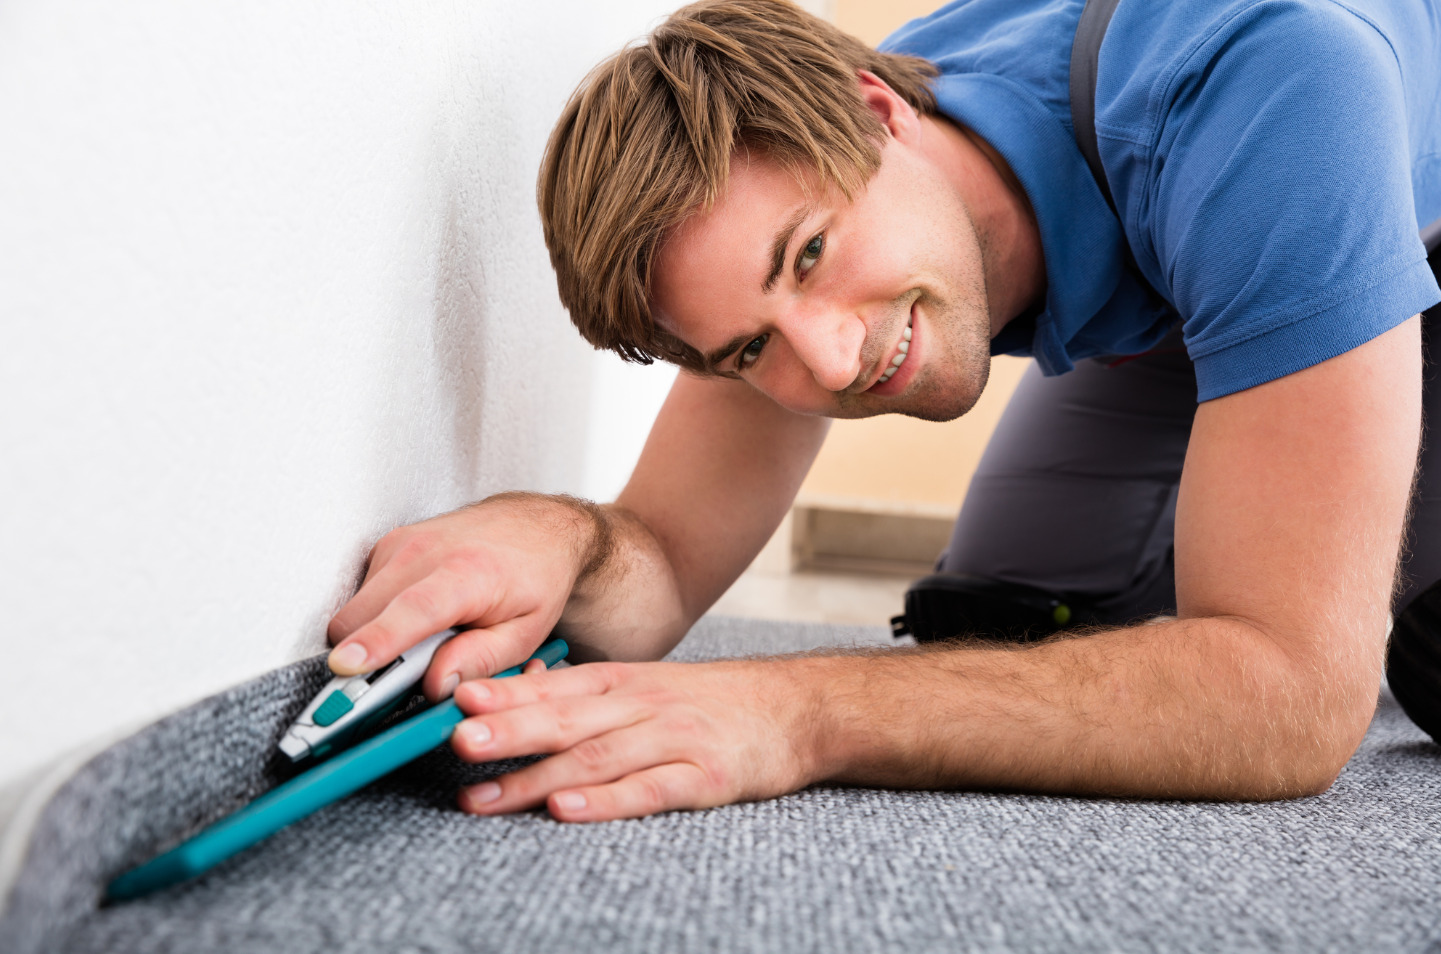 Carpet fitting in Ormskirk